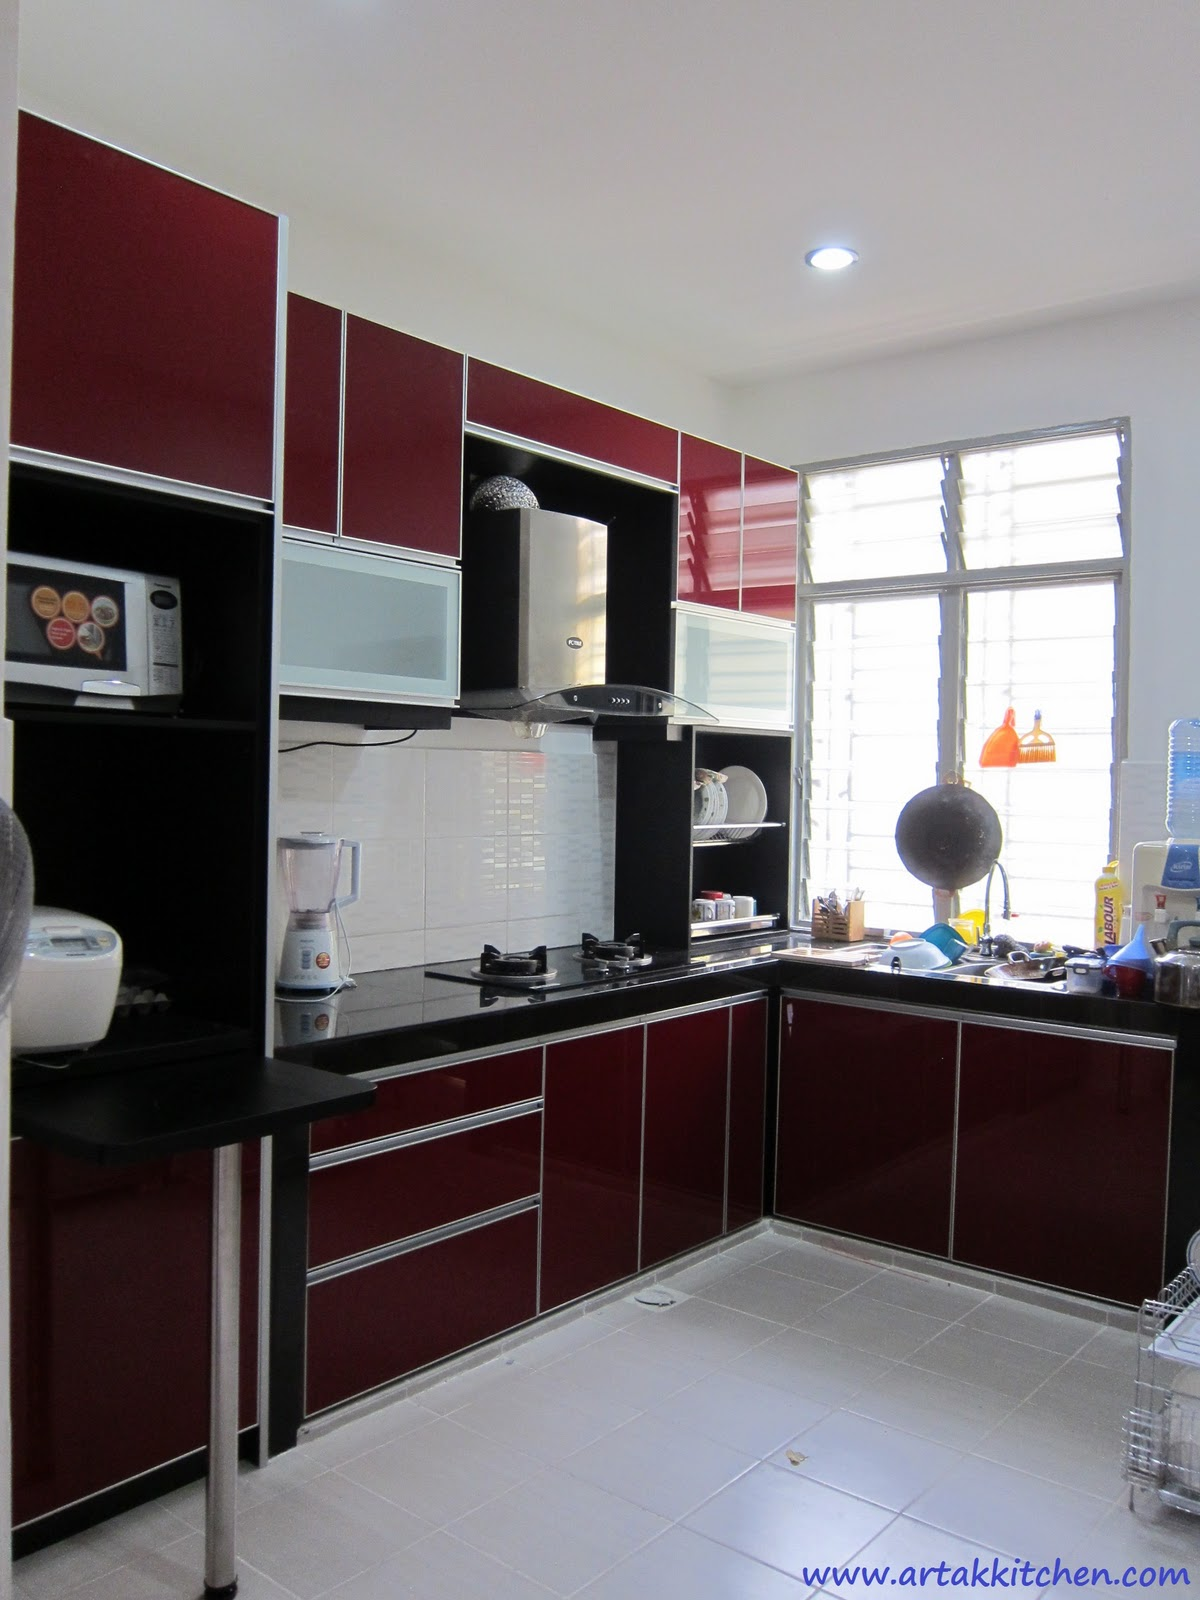 Intech kitchen sdn bhd new kitchen cabinet design for Latest kitchen cabinet design